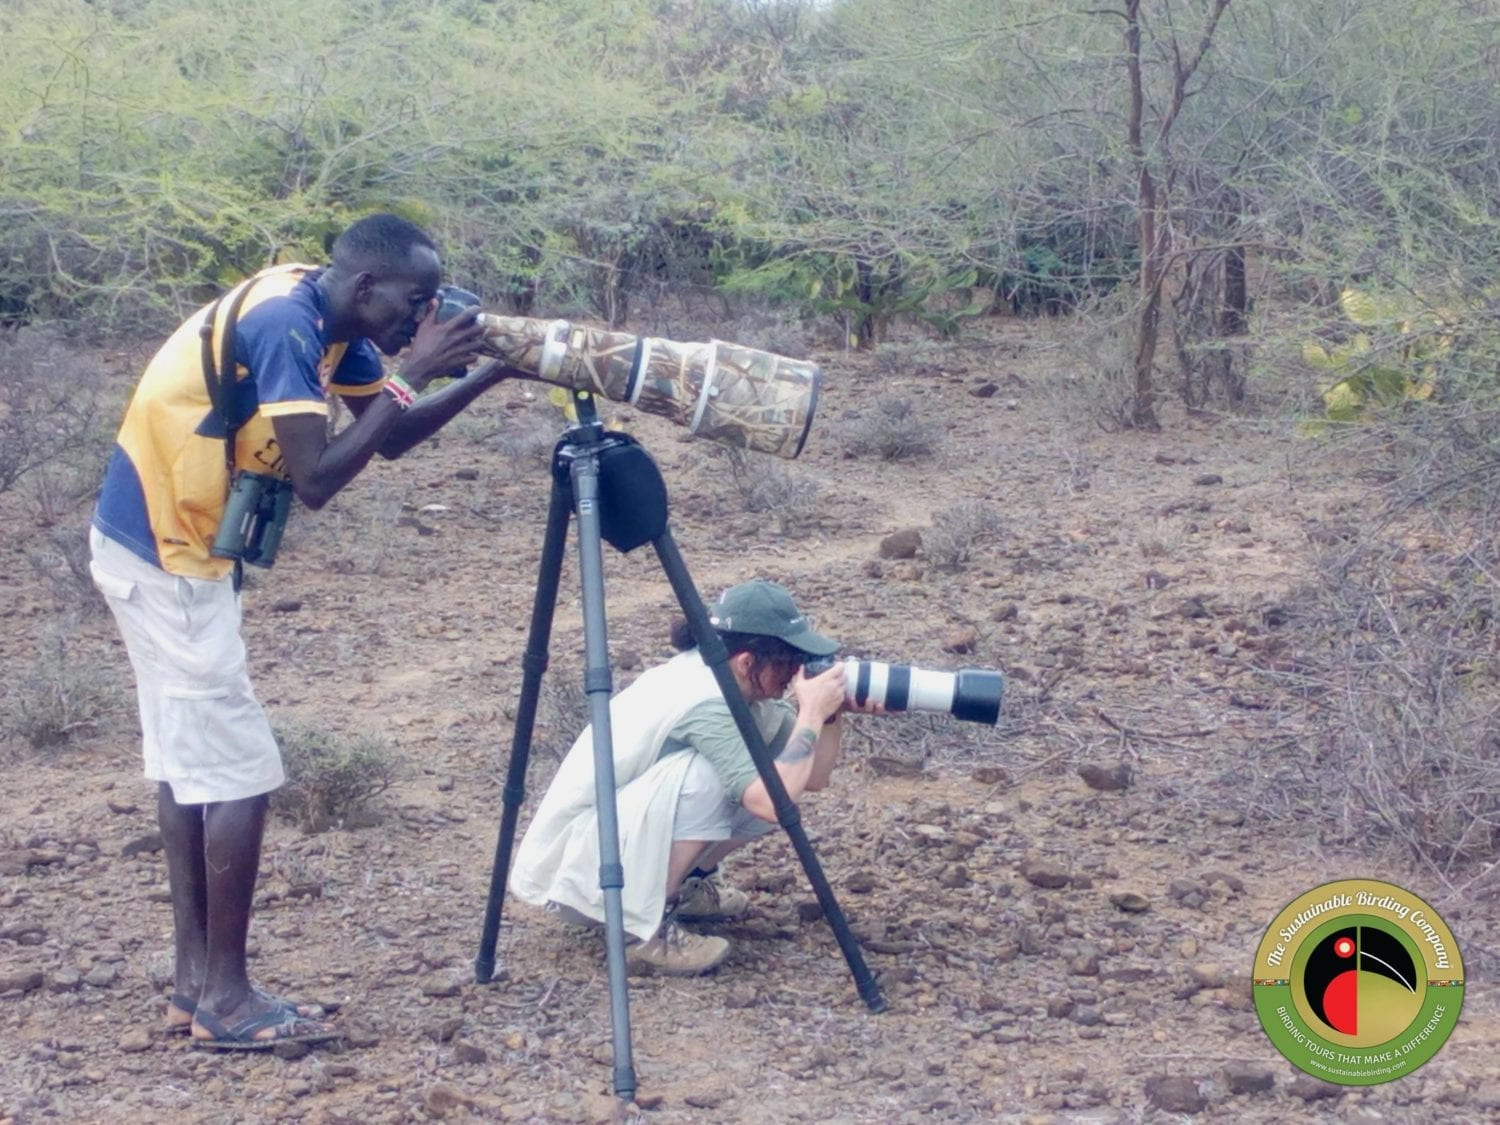 Looking for the best photo on one of our Uganda BIrding Tours